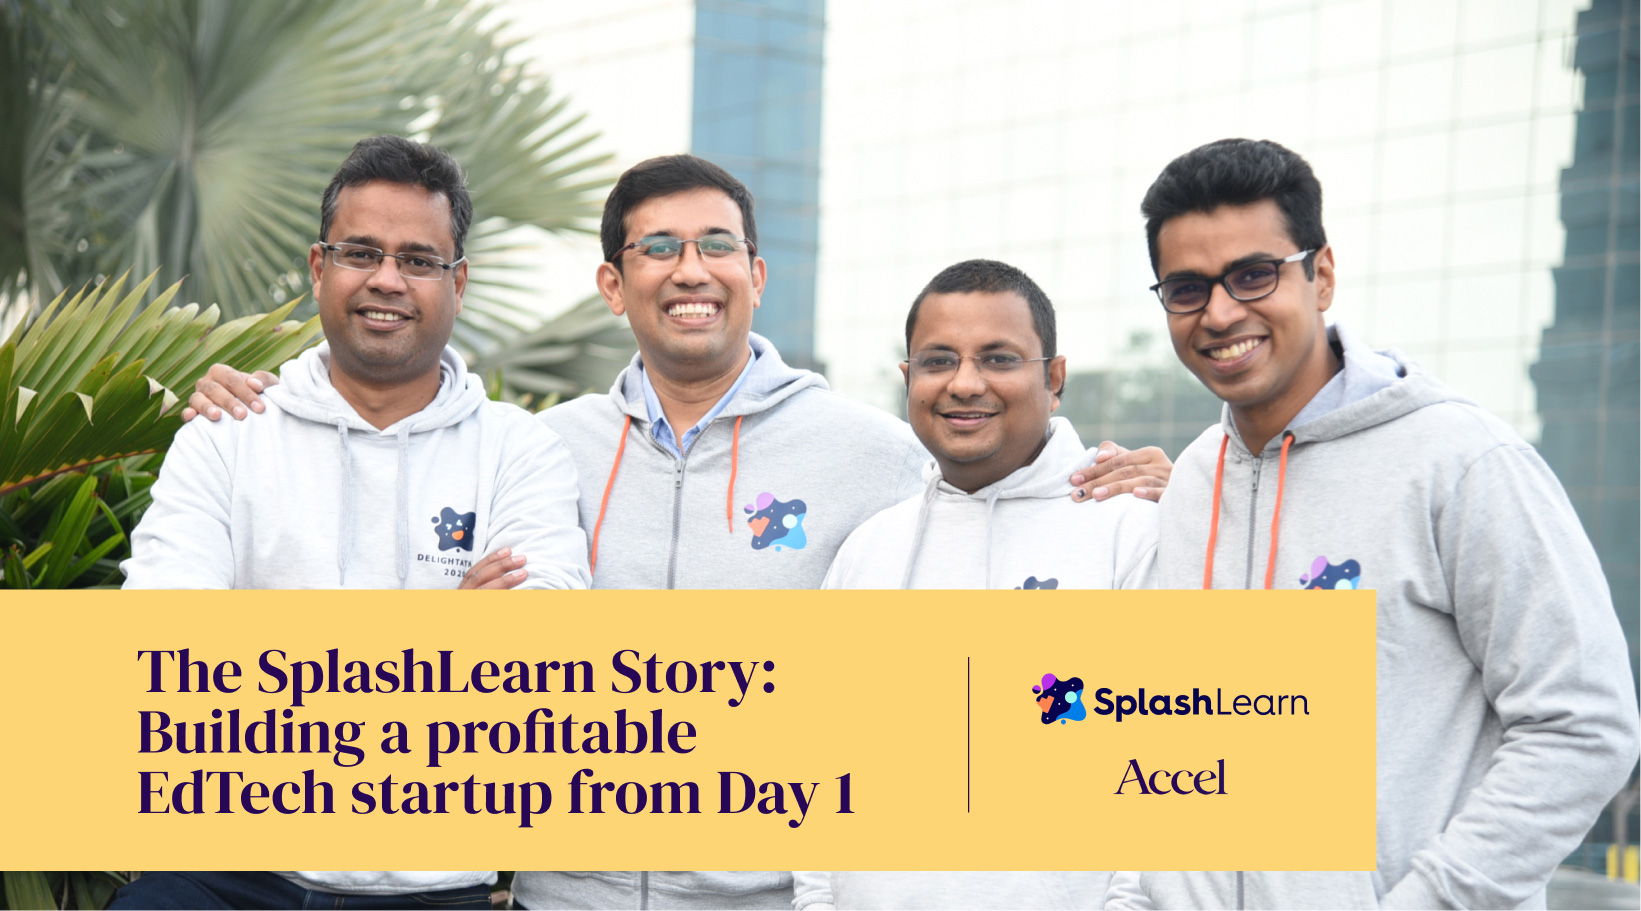 How to build a profitable EdTech startup from Day 1 - The SplashLearn story